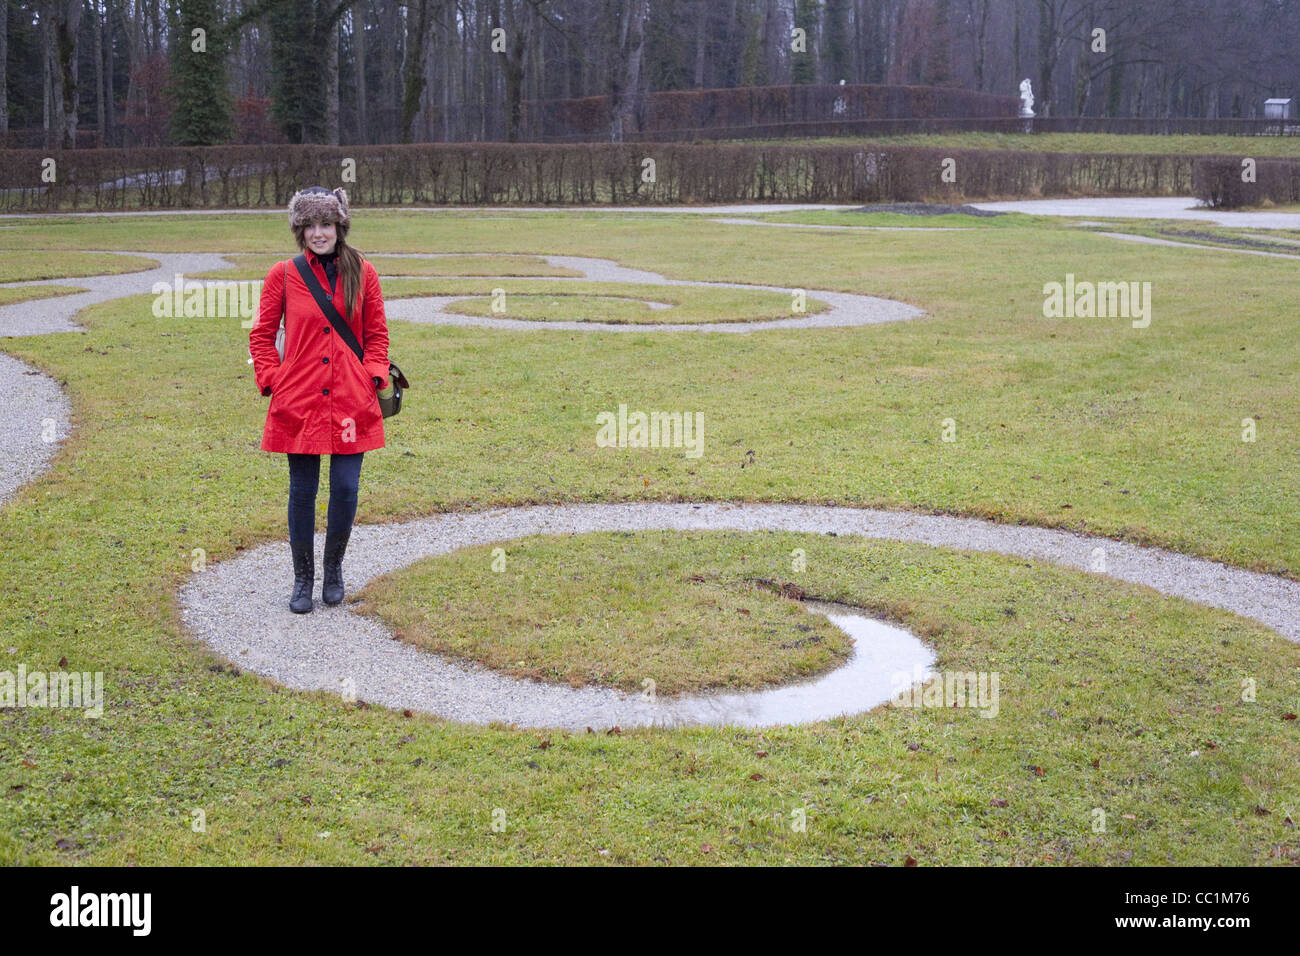 A girl with a red jacket walks a spiral path in a green garden at the Herreninsel Palace built by King Ludwig II. - Stock Image